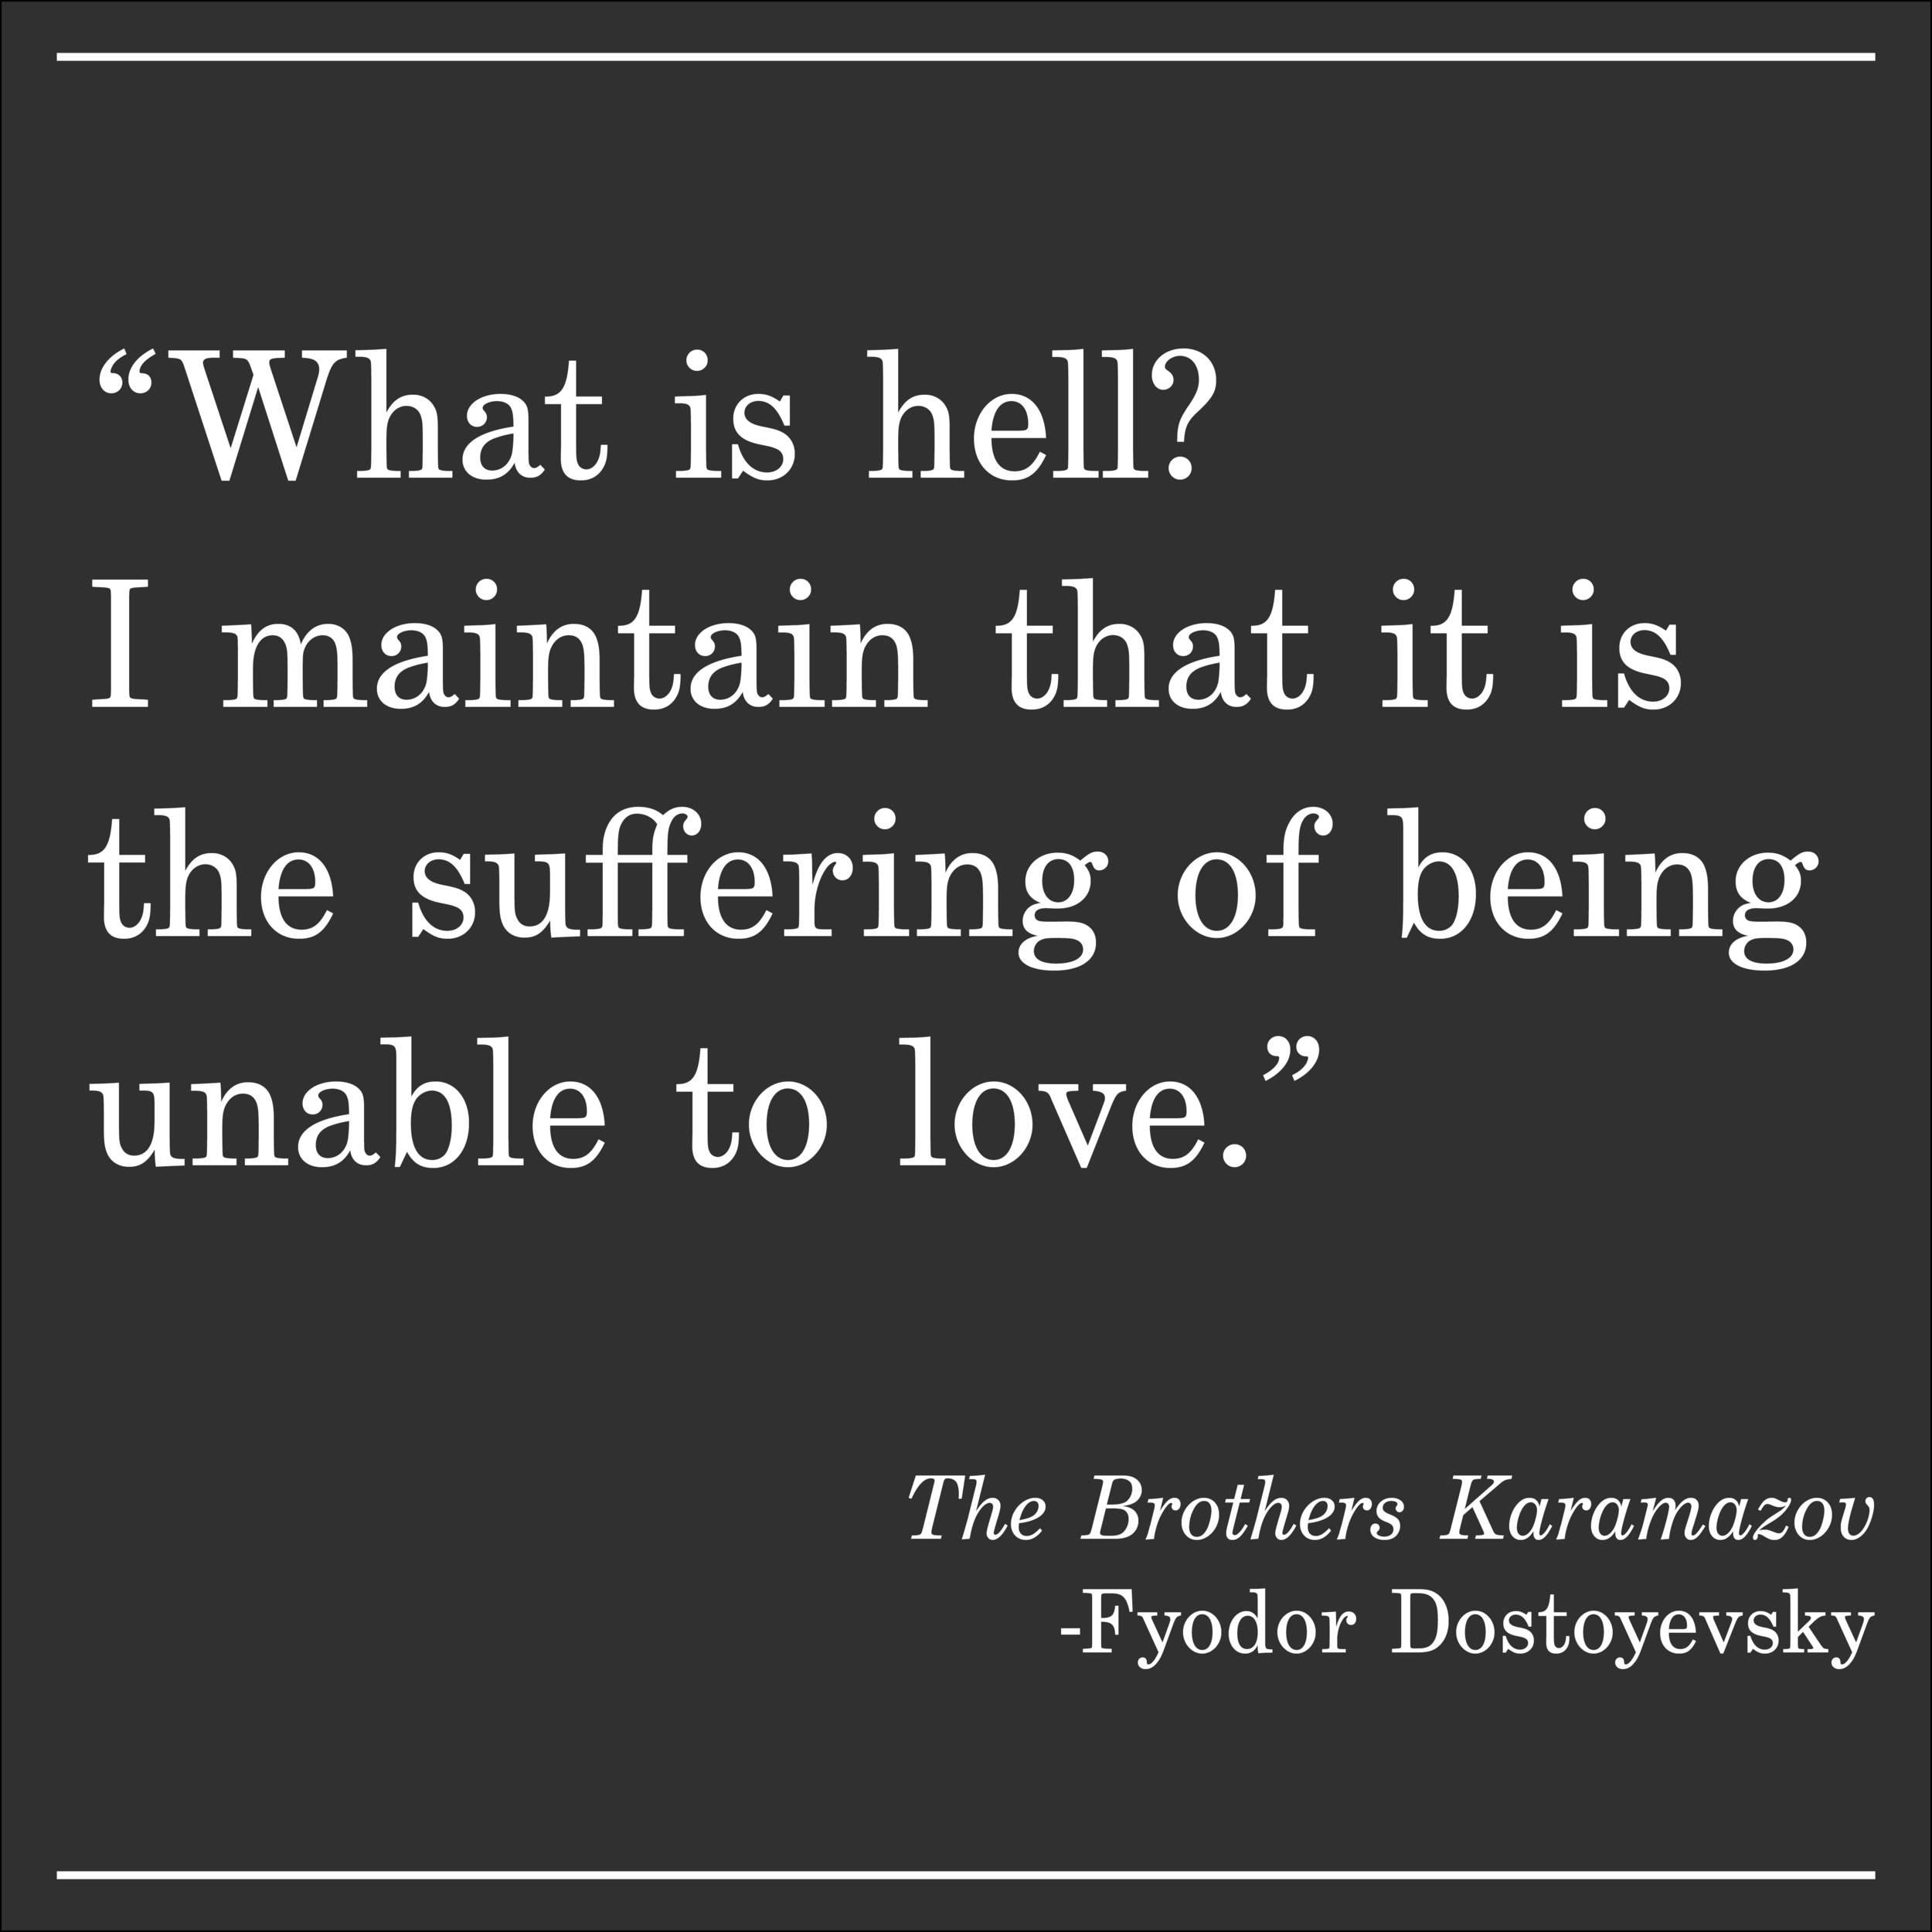 Daily Quote The Brothers Karamazov by Fyodor Dostoyevsky